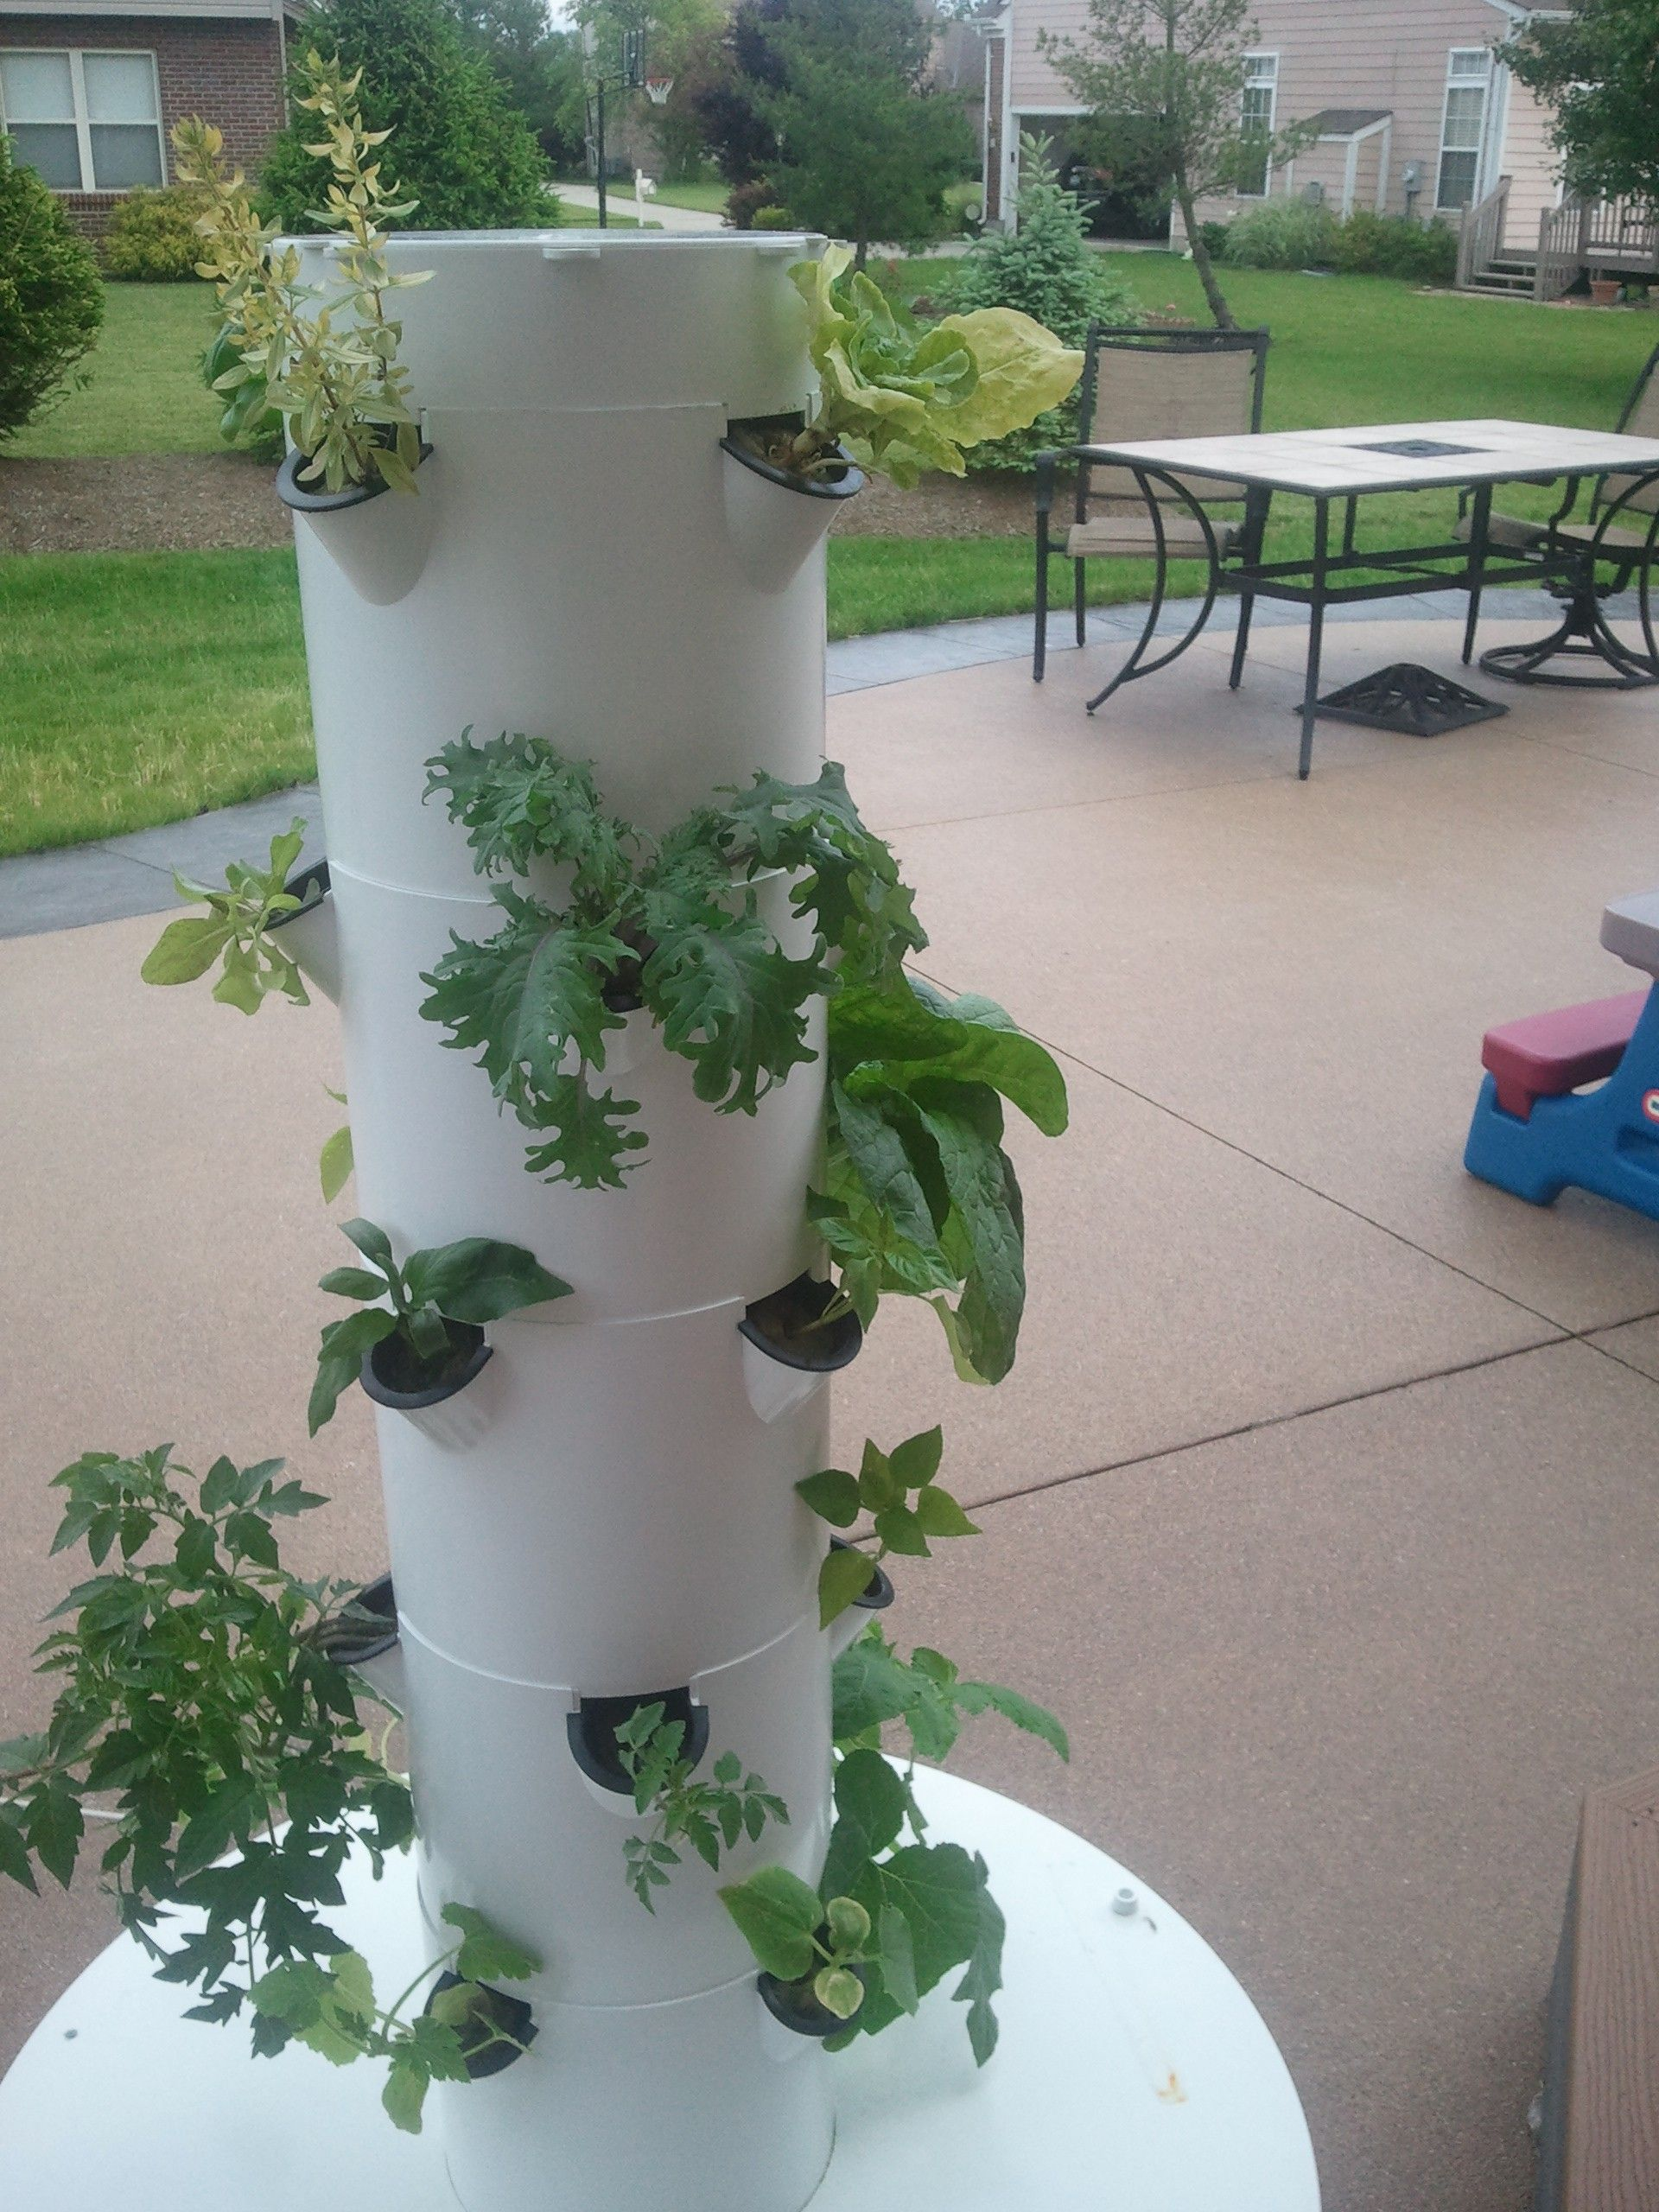 Grow Food In Your Backyard With The Tower Garden!